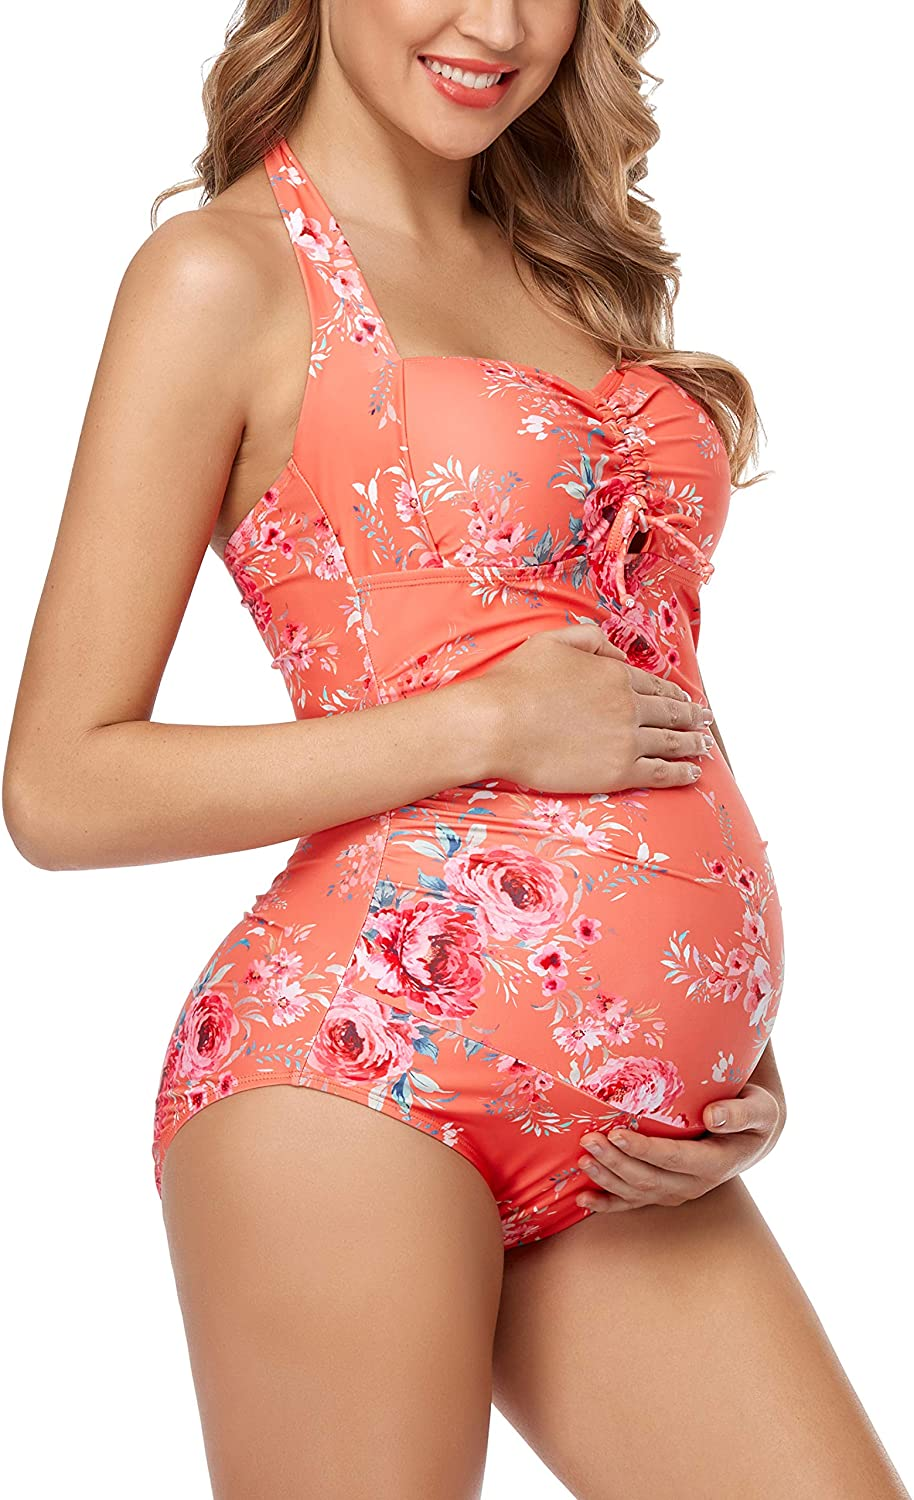 EastElegant Maternity Swimwear One Piece Halter Pregnancy Swimsuit Floral Bathing Suits with Adjustable Chest Drawstring